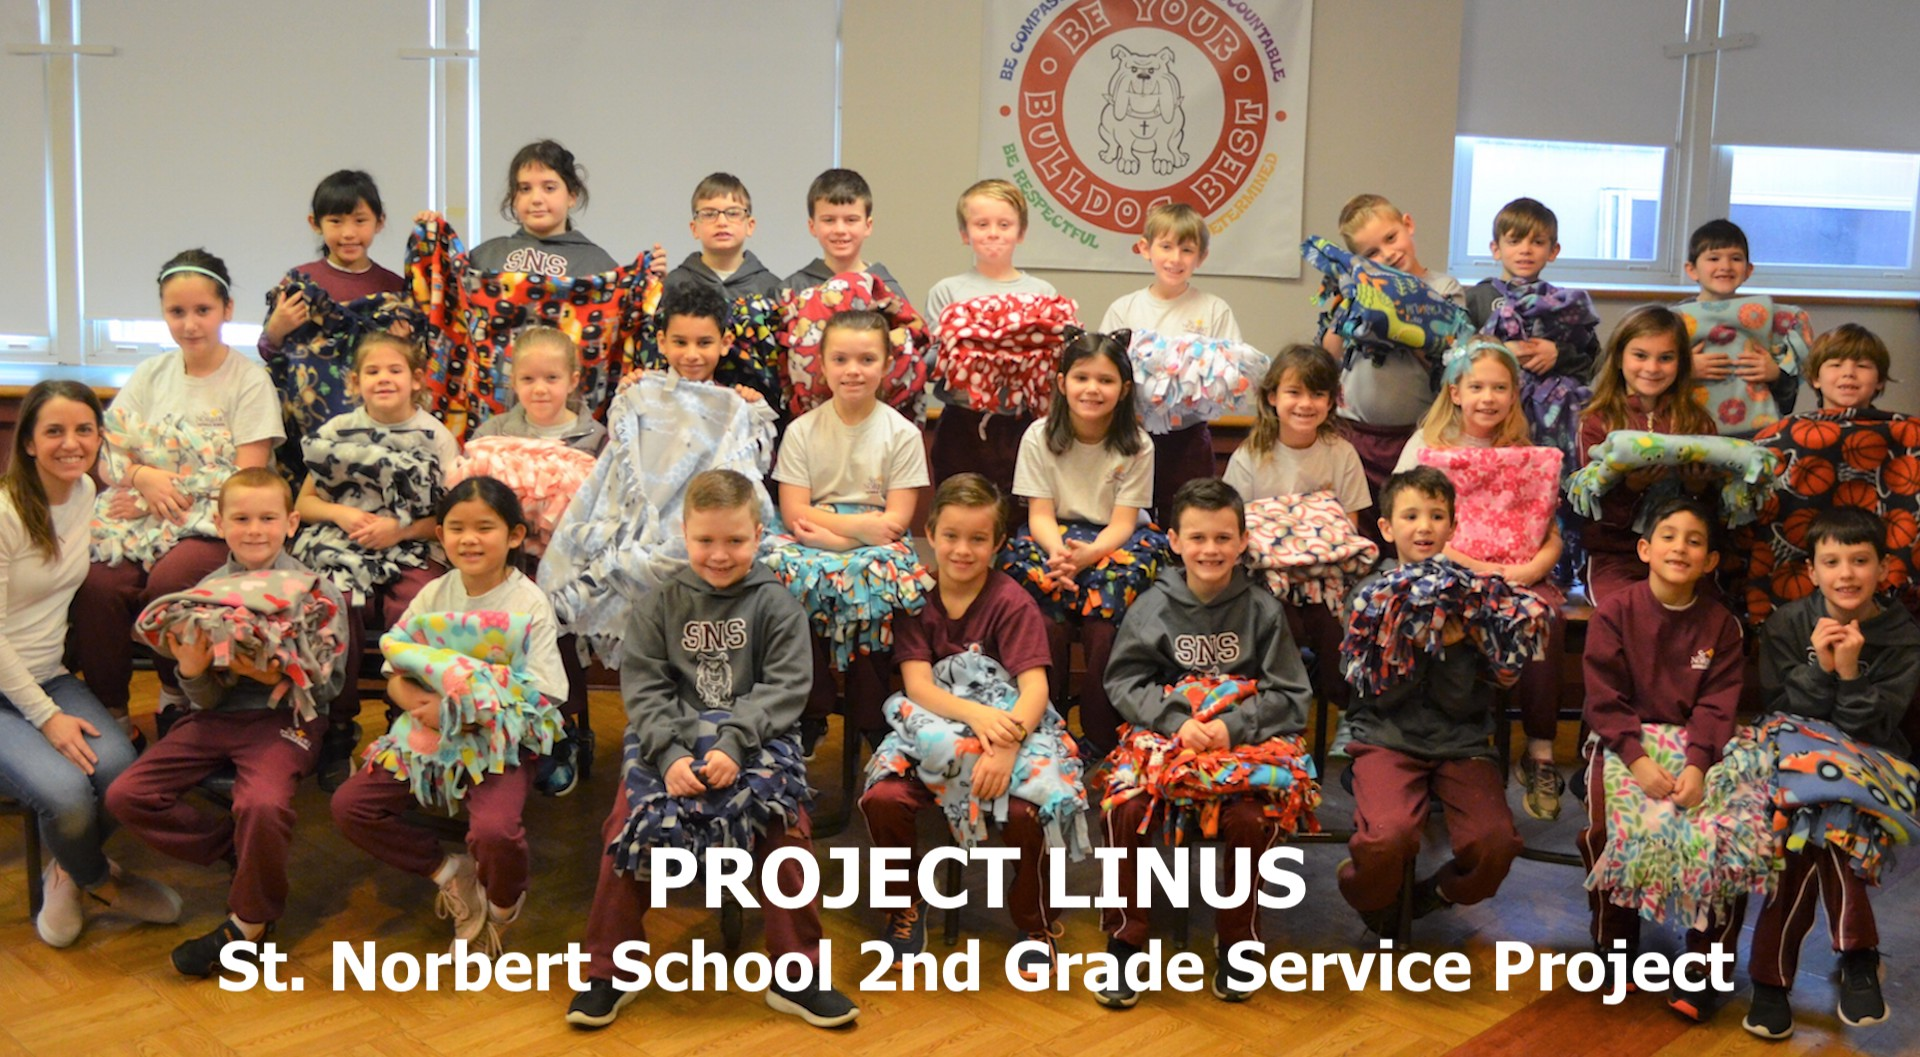 RoundUP SNS 03012019 - 2nd Graders Participate in Project Linus Service Project